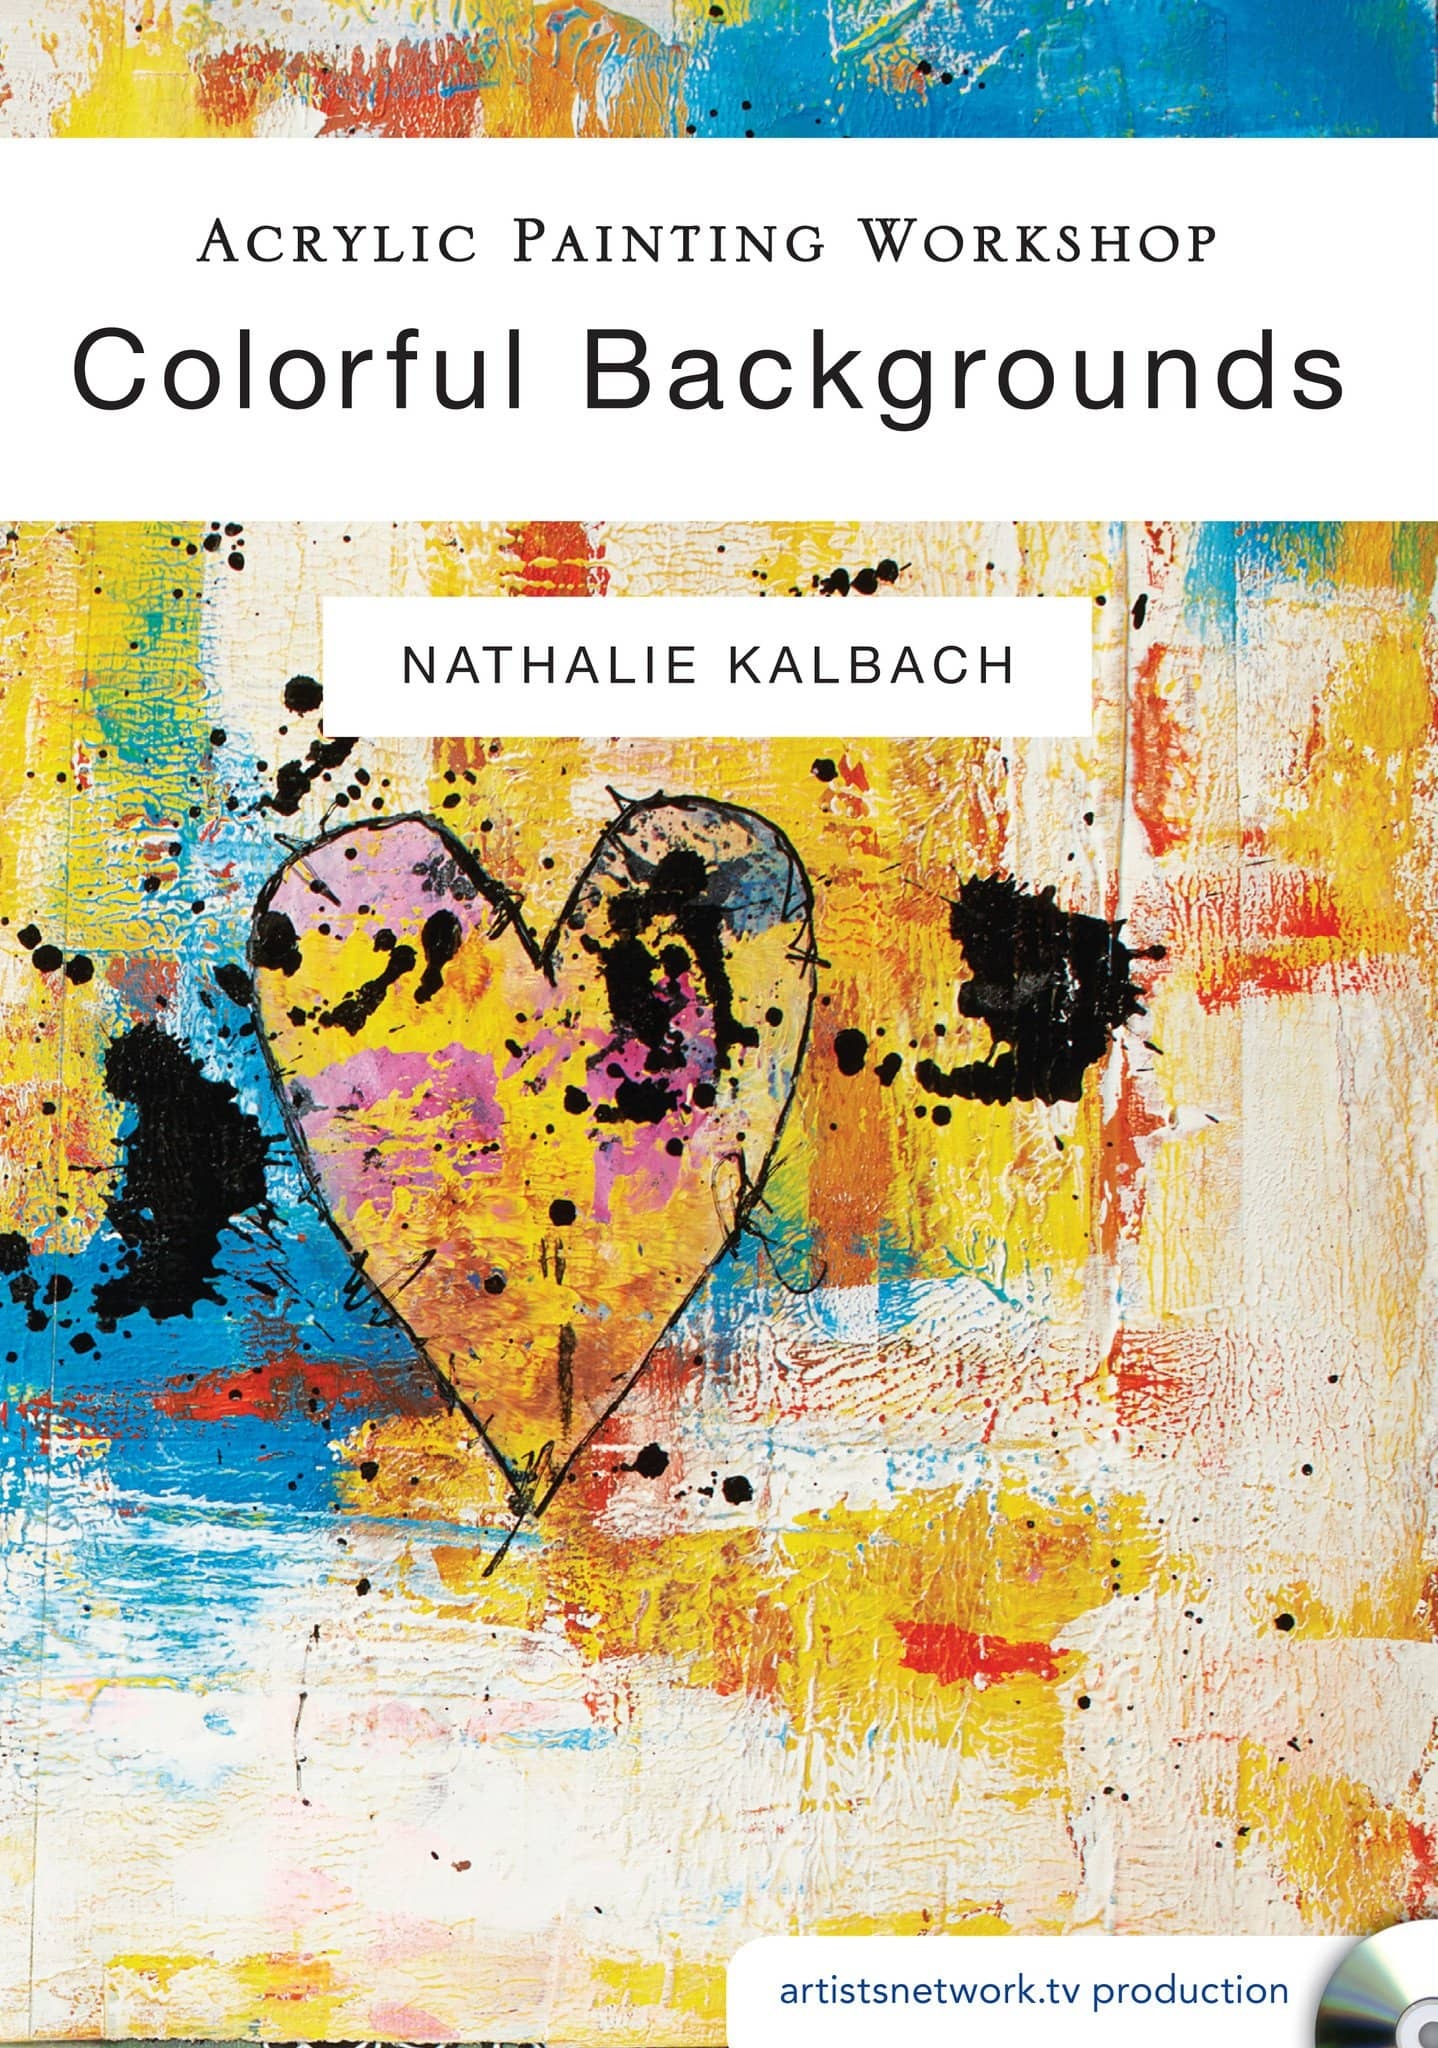 Acrylic Painting Workshop:  Colorful Backgrounds with Nathalie Kalbach